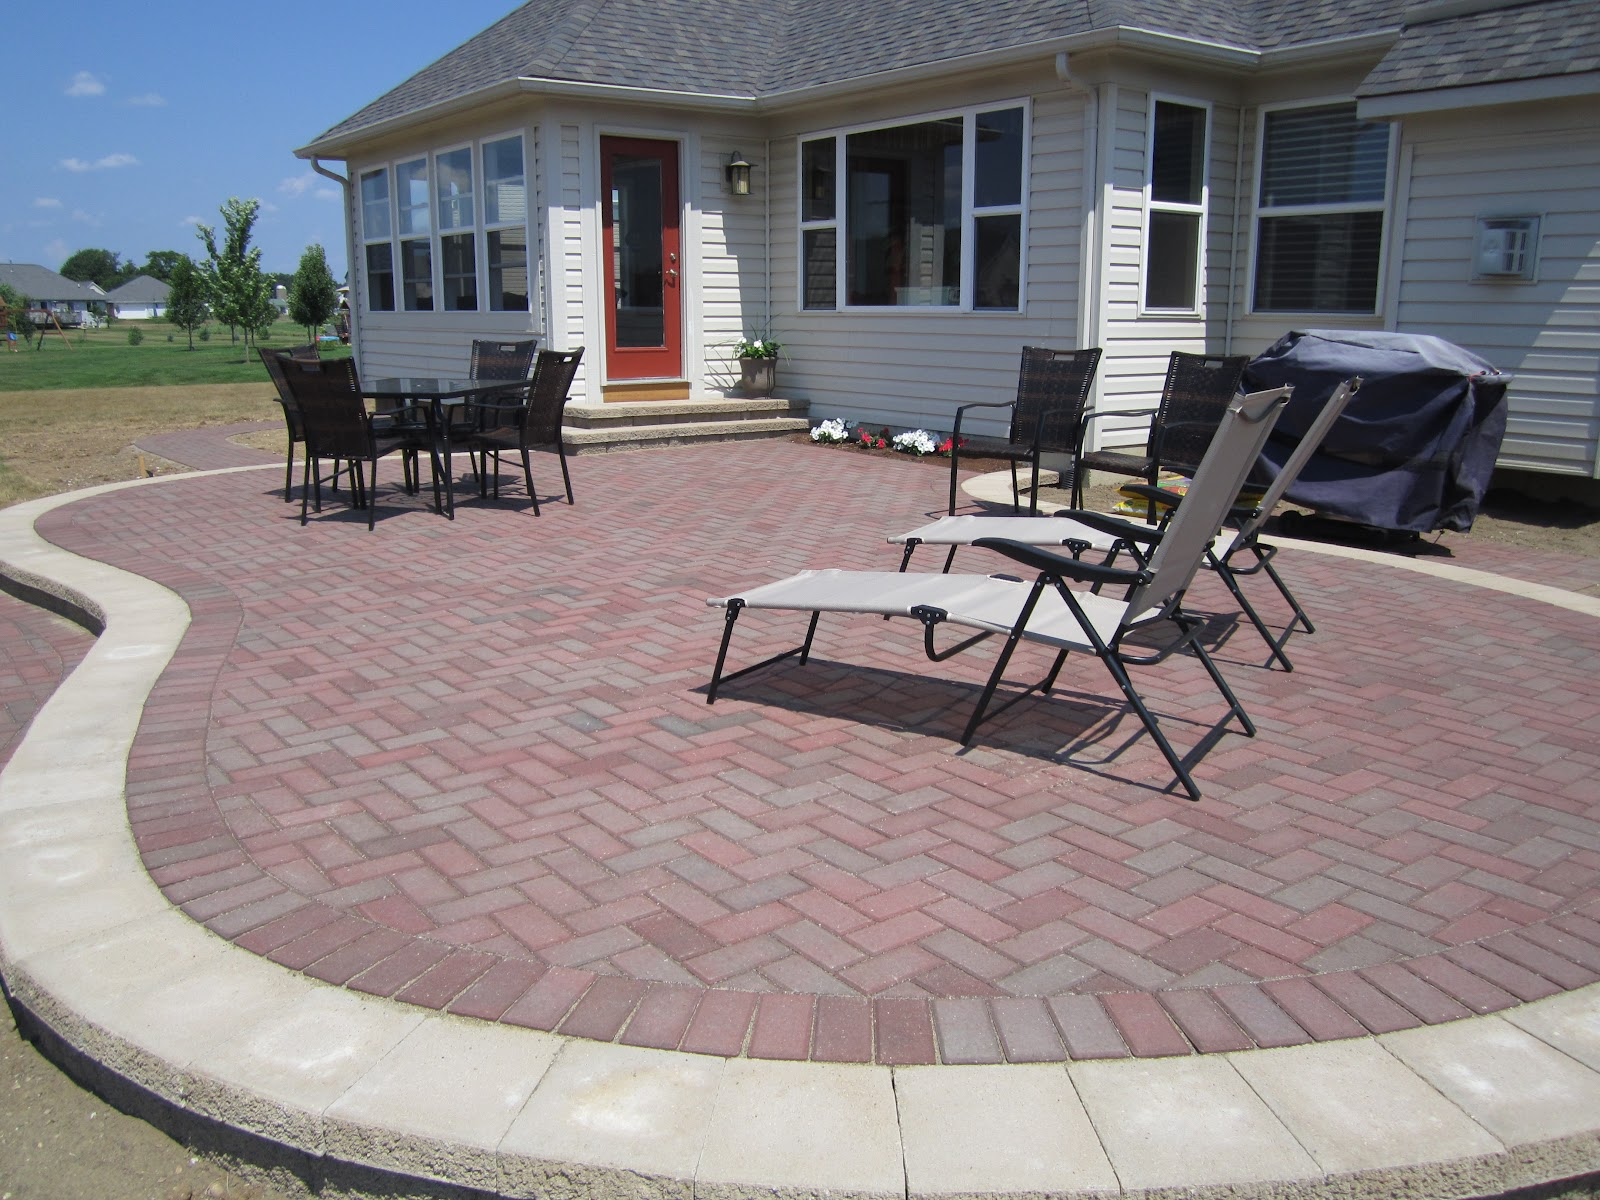 Patio design brick paver paver patio design ideas patio paverfirepit memorial tables - Paver designs for backyard ...